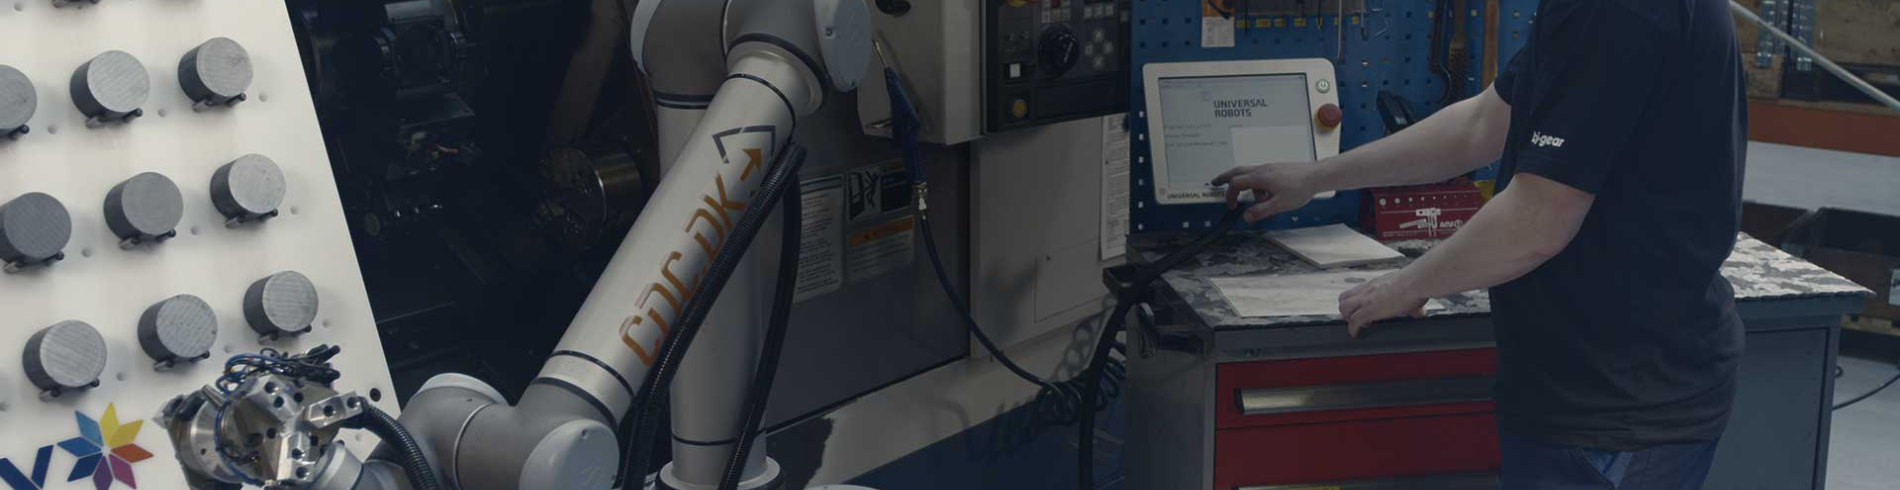 Universal Robots are used in thousands of production environments everyday cover image